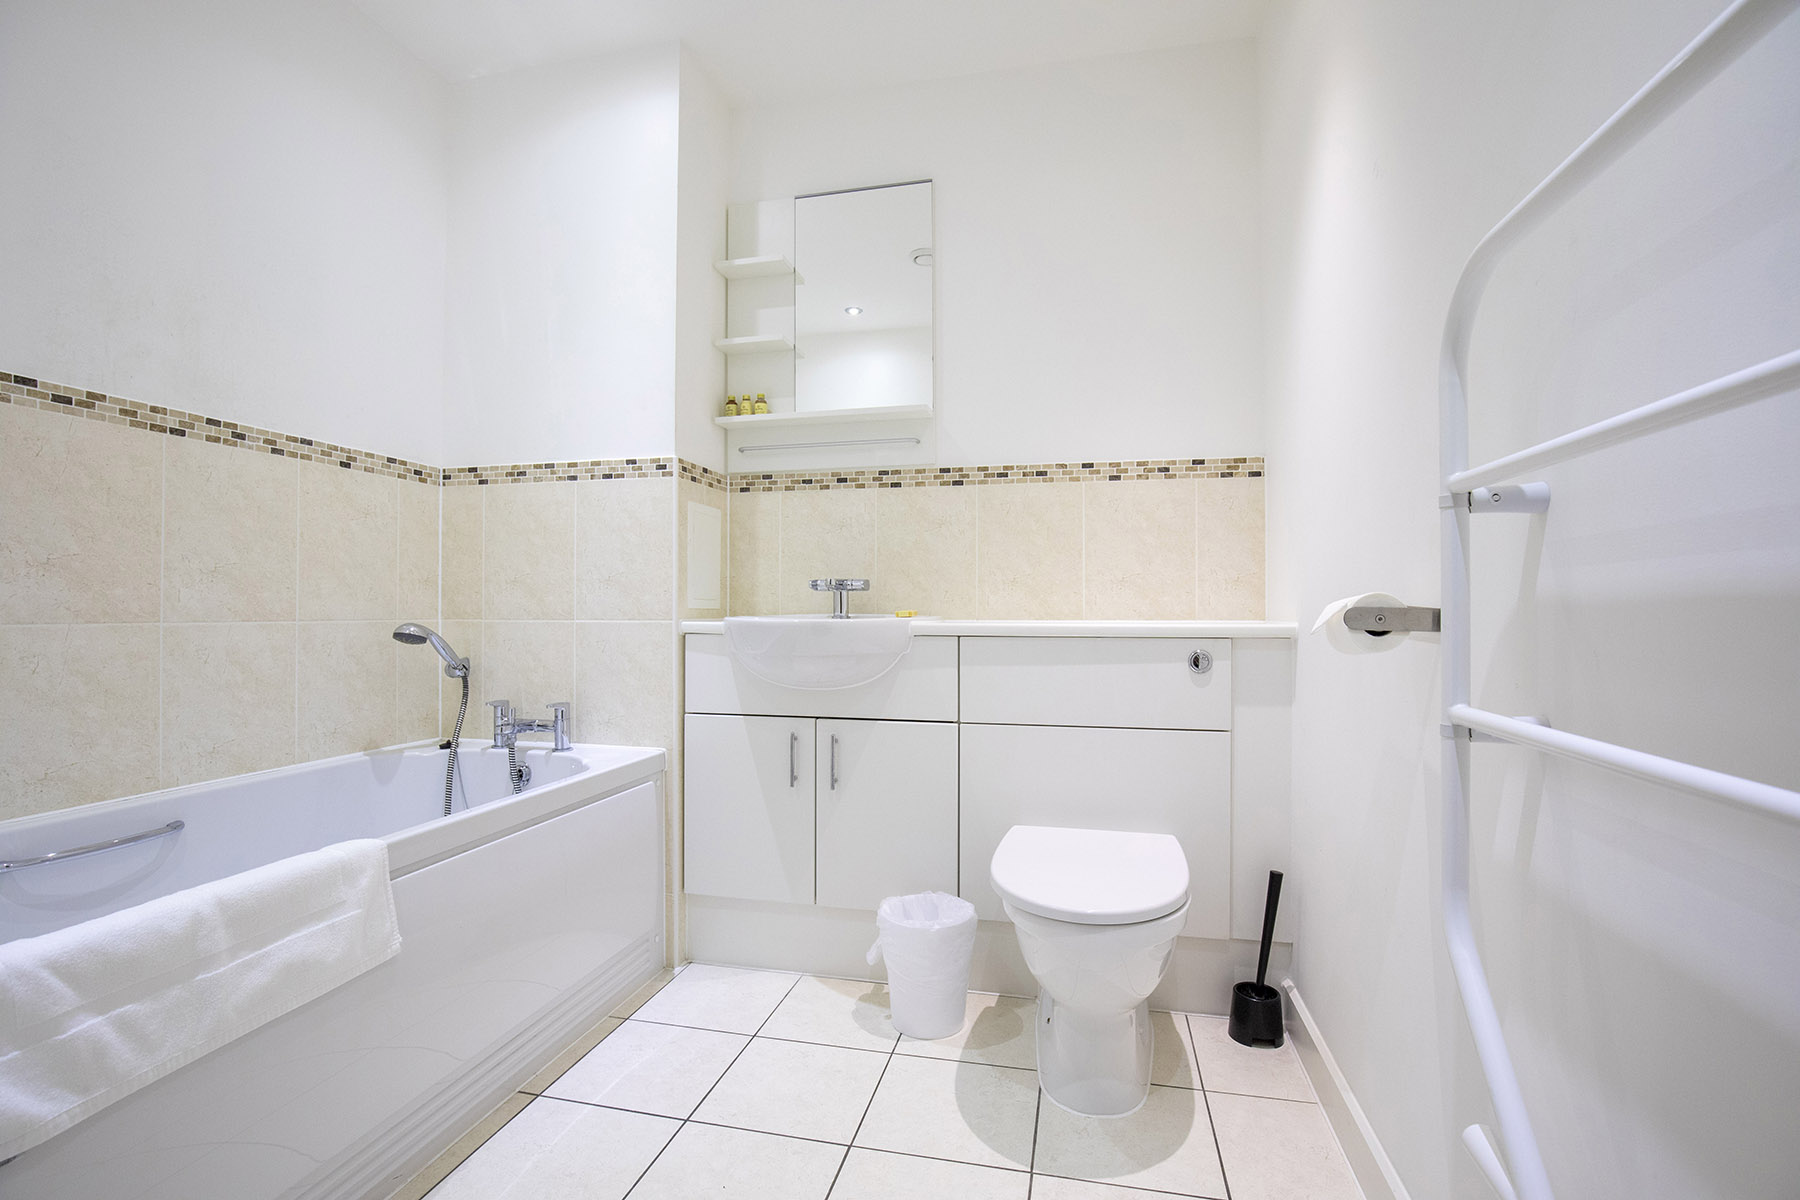 Bathroom at New Central Apartments, Centre, Woking